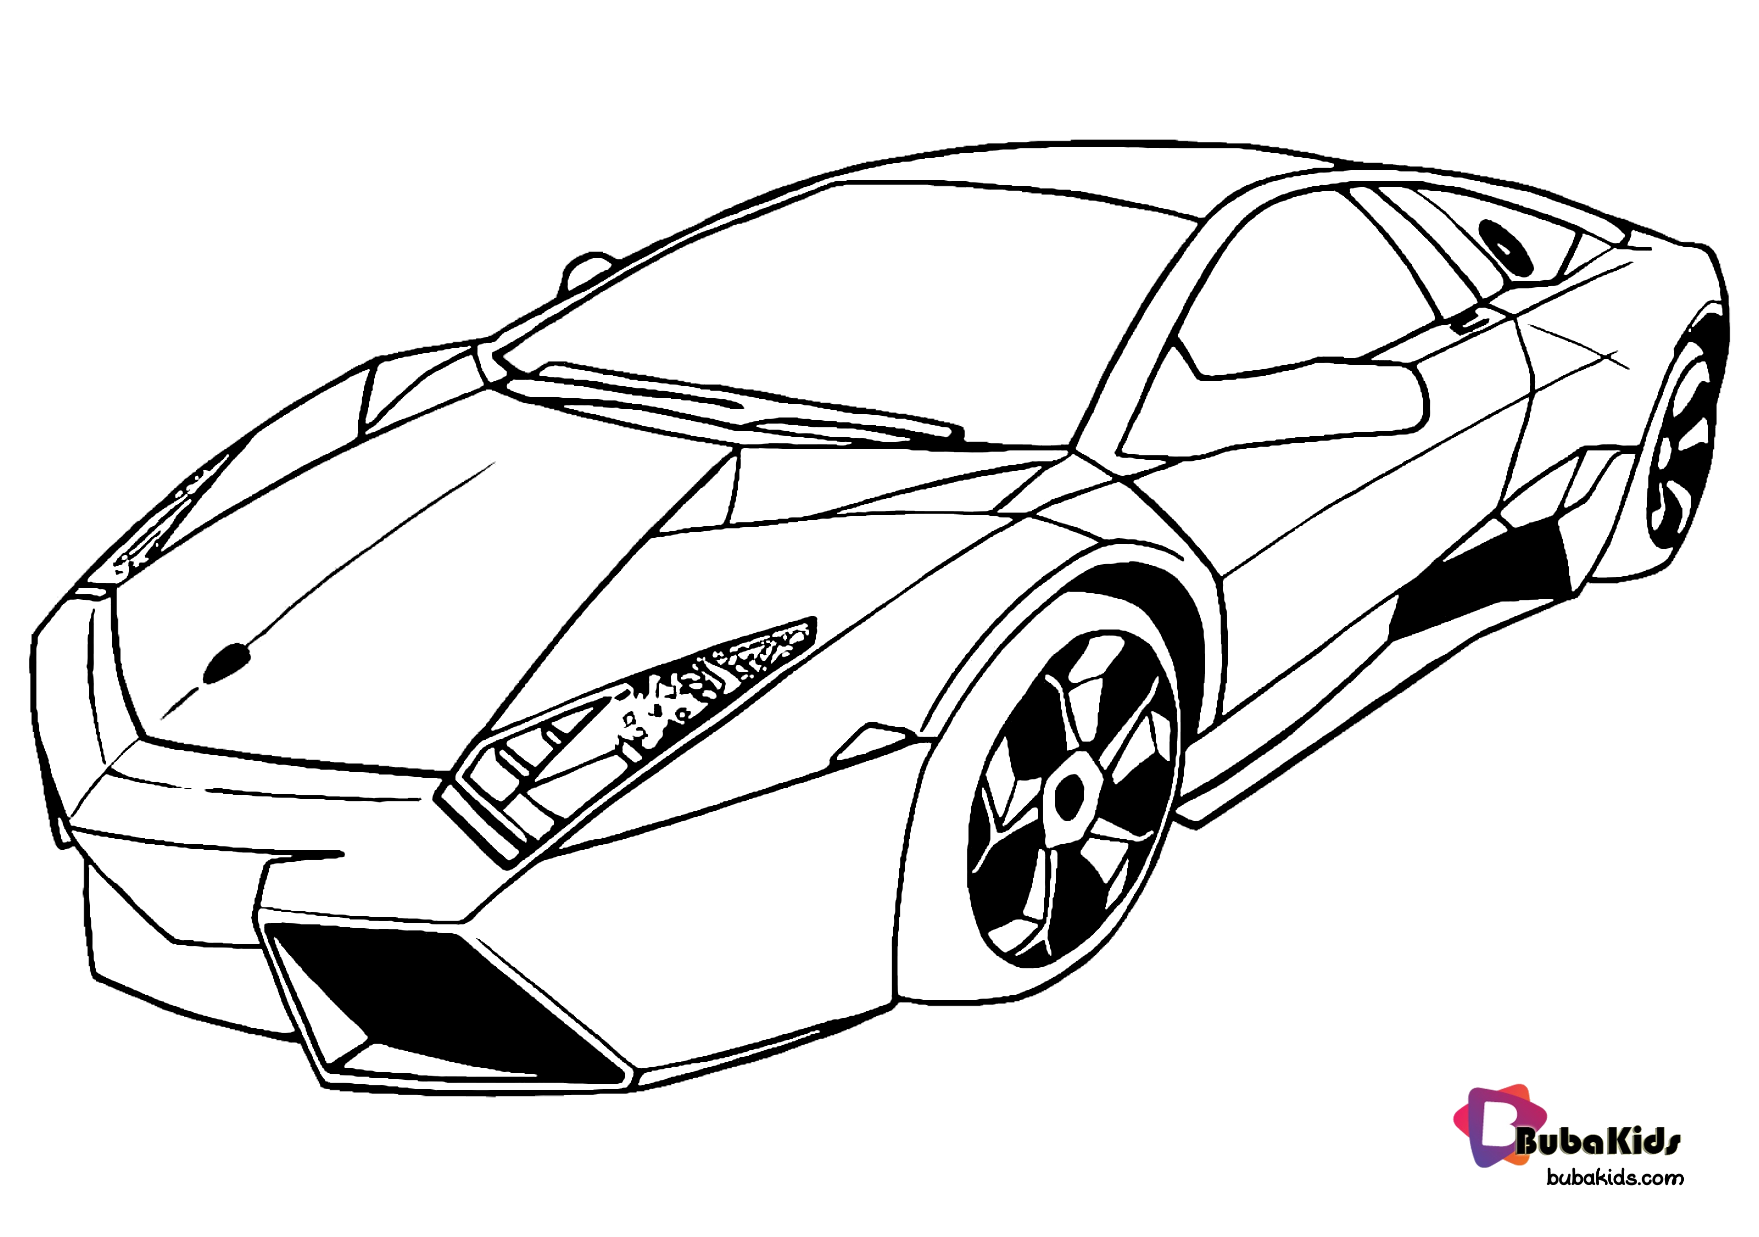 Free Download And Printable Super Car Coloring Page Cars Coloring Pages Race Car Coloring Pages Coloring Pages